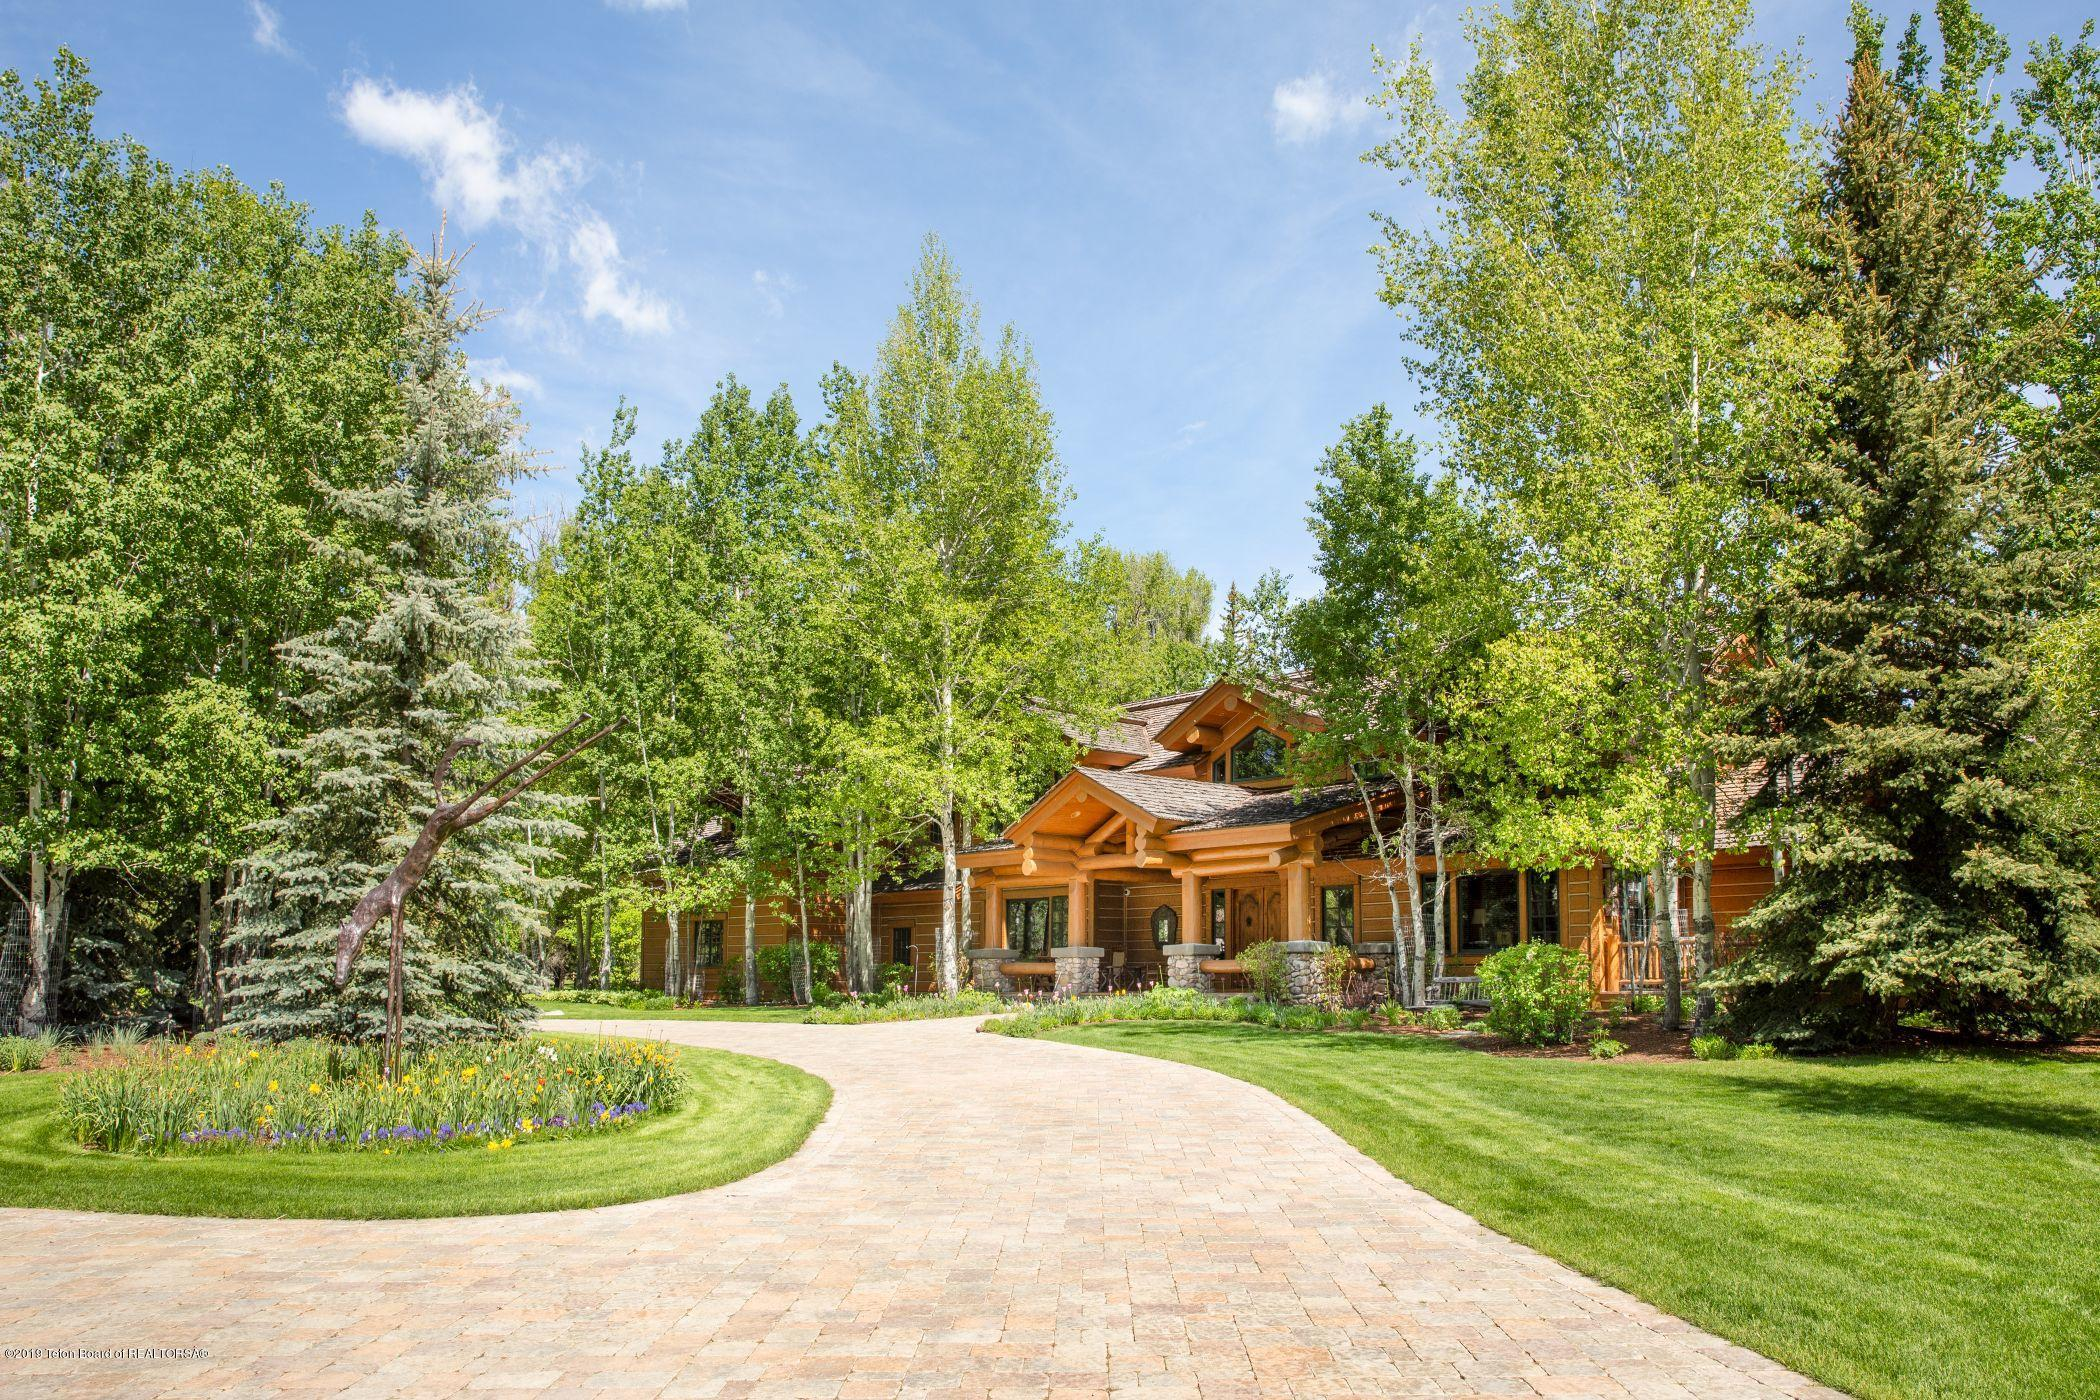 Photo of 1155 S ELY SPRINGS RD, Jackson, WY 83001